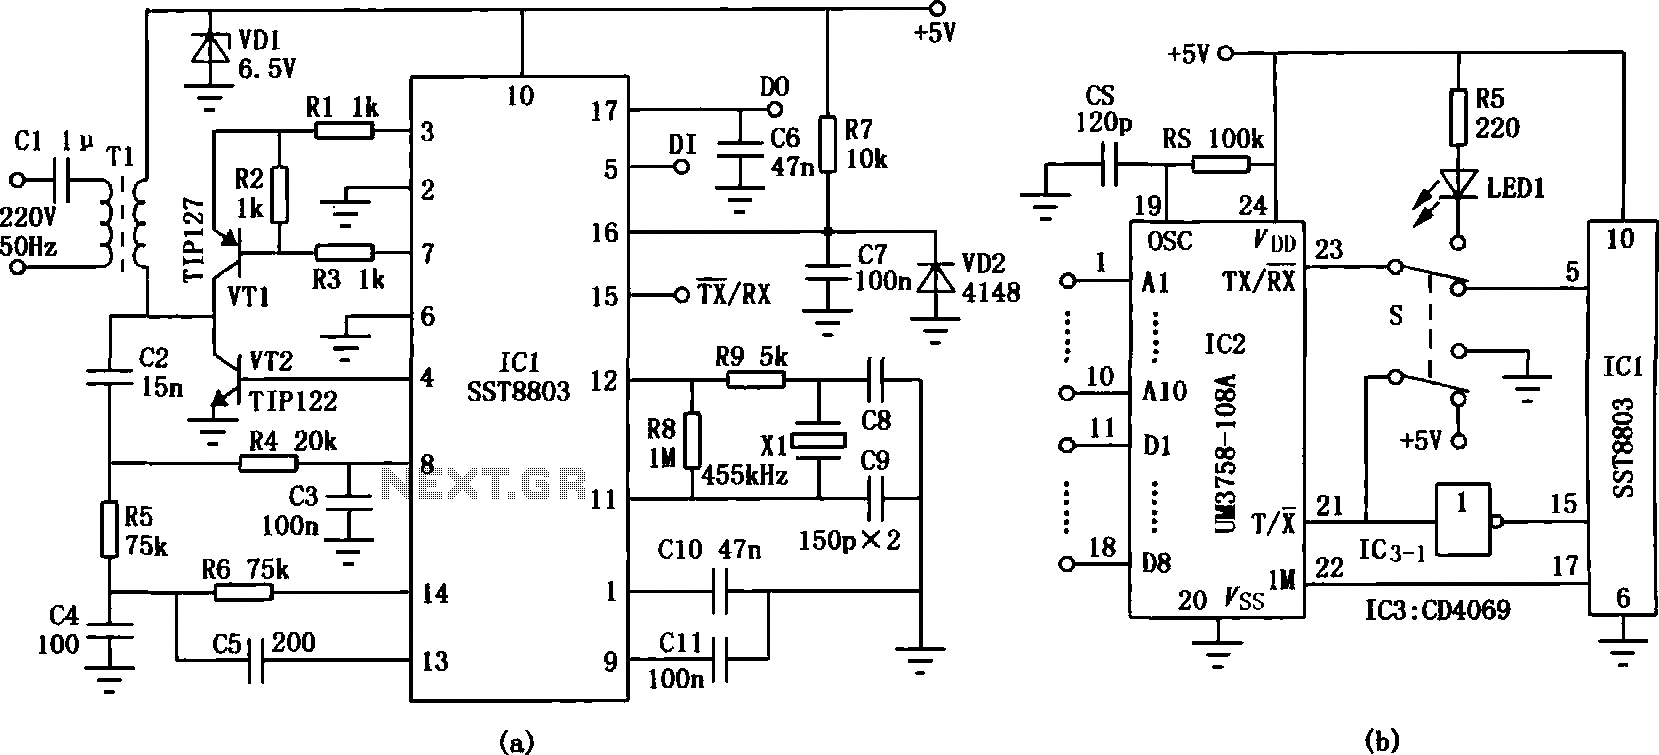 infrared headphones transmitter circuit